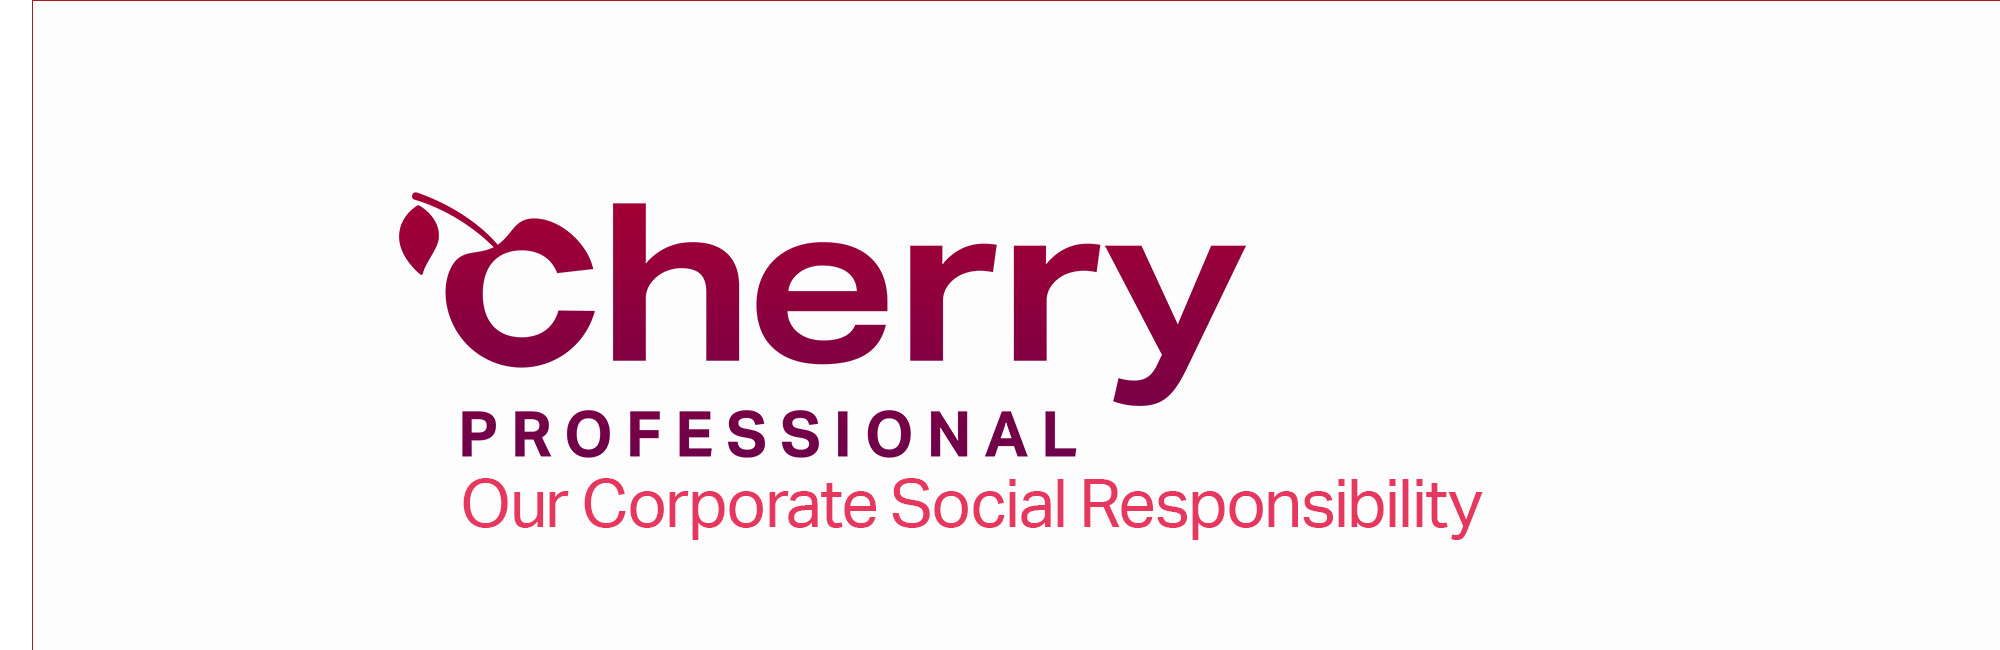 Cherry Professional, logo, CSR, corporate social responsibility